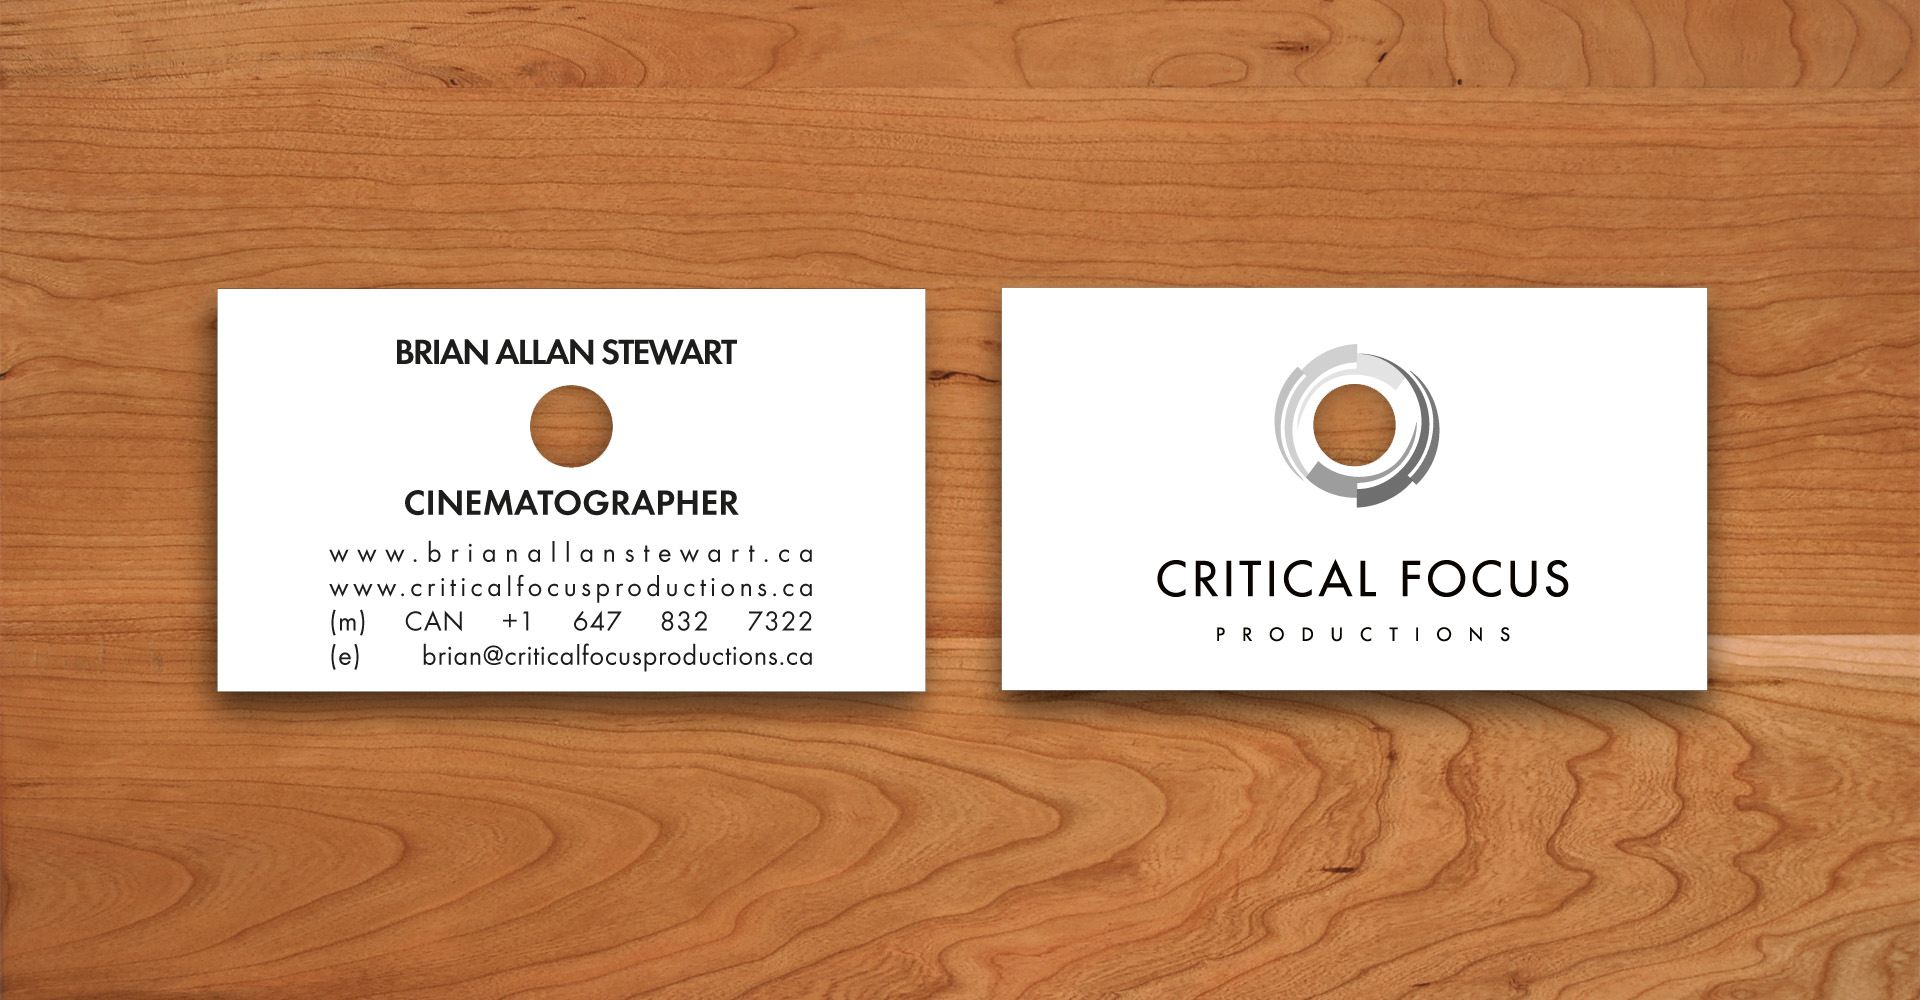 Magnificent toronto business card printing photos business card pretty toronto business card printing pictures inspiration reheart Gallery